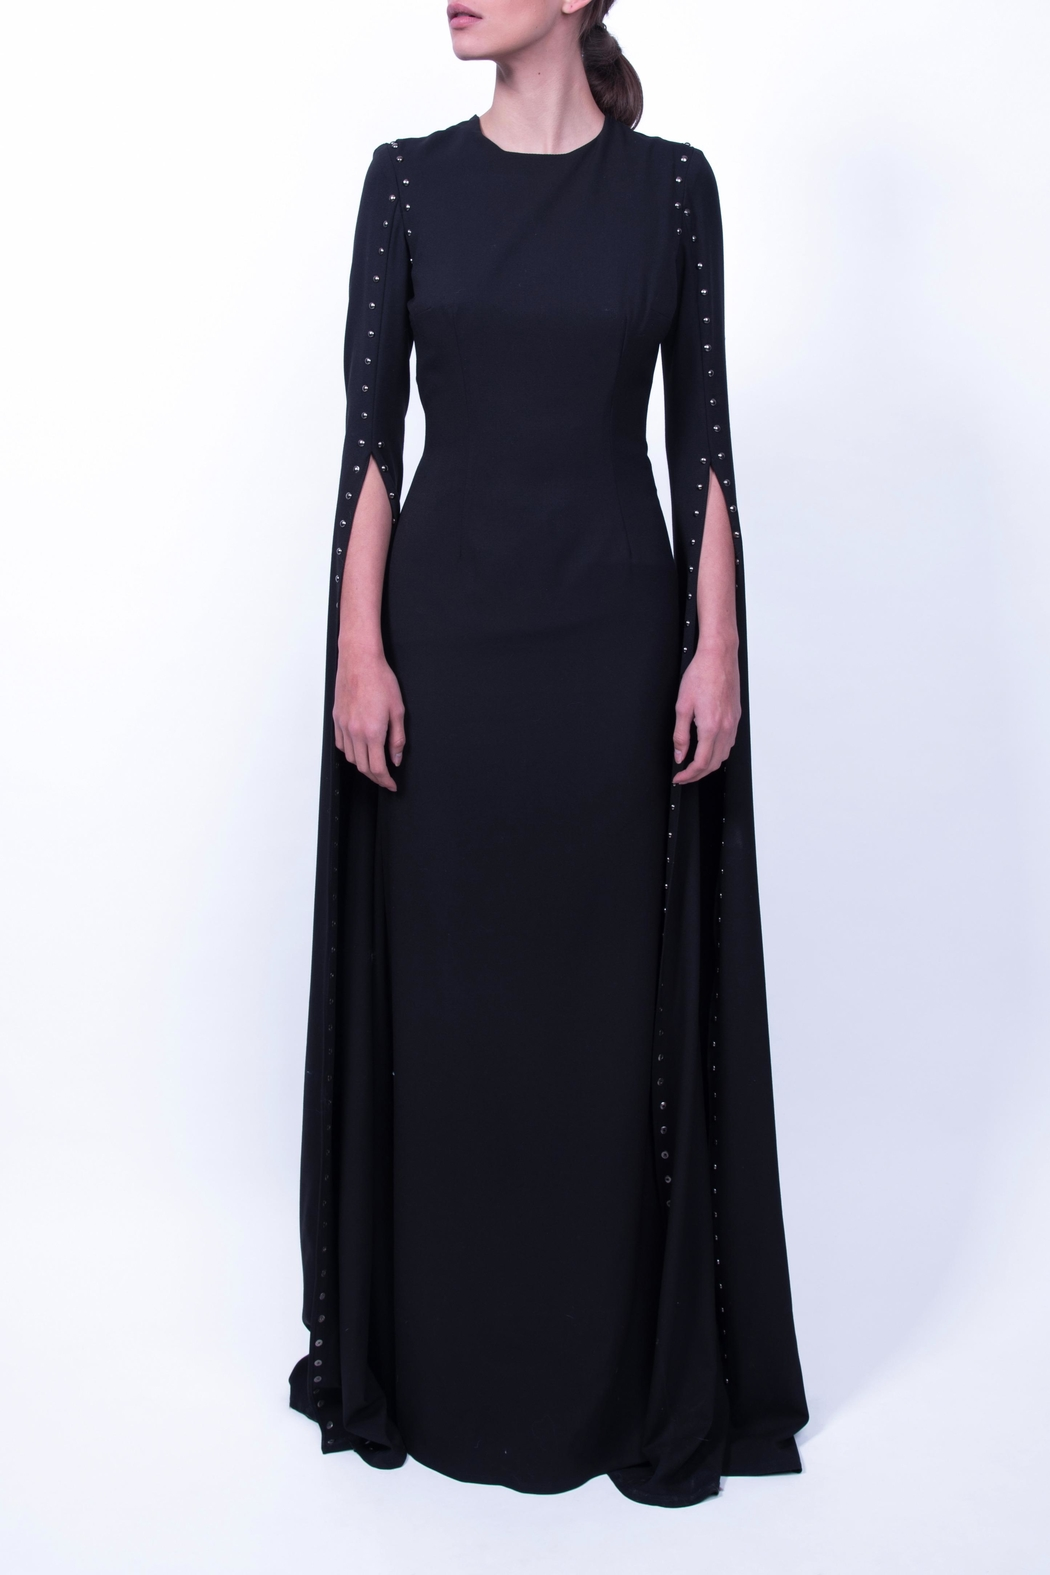 3918bee3a3c Viesca y Viesca Floor-Length Sleeve Gown from Mexico — Shoptiques